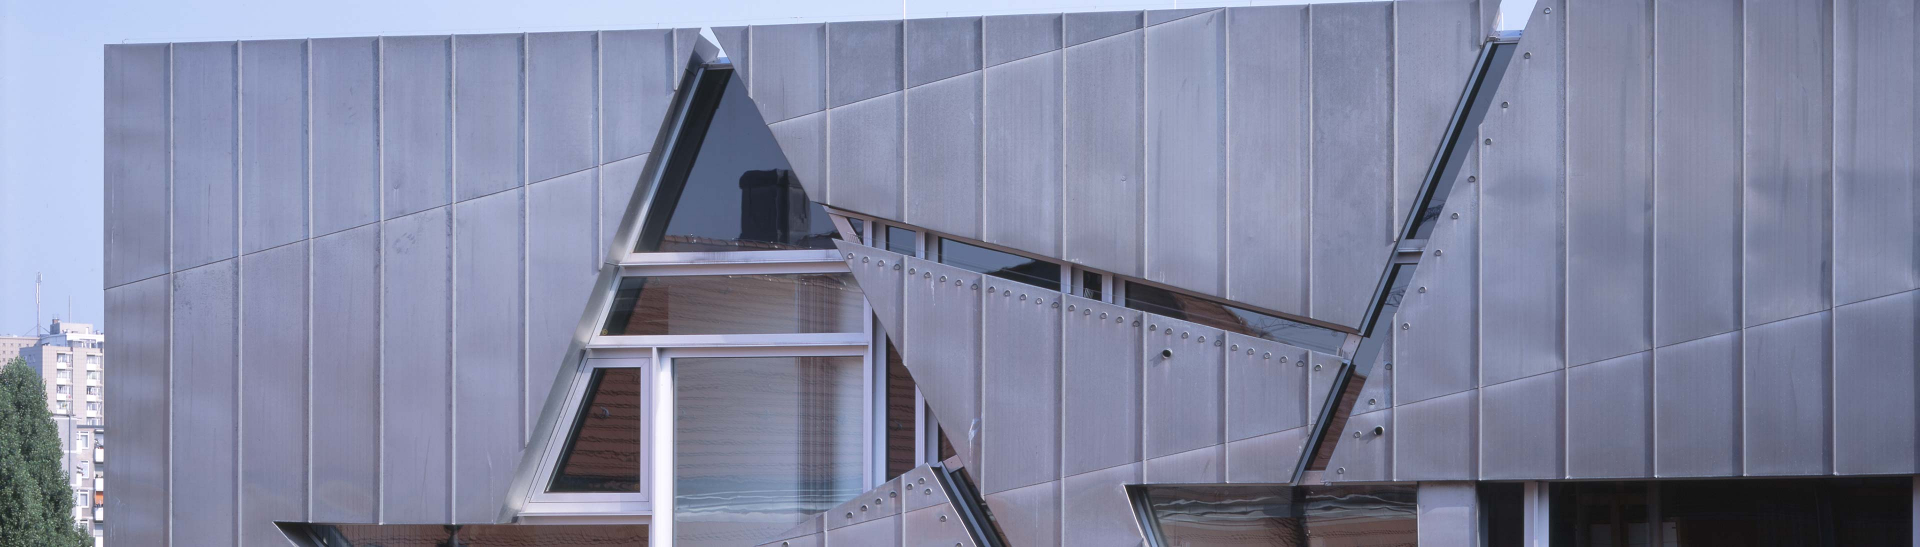 Parts of the titanium-zinc façade of the Libeskind Building with a triangular window